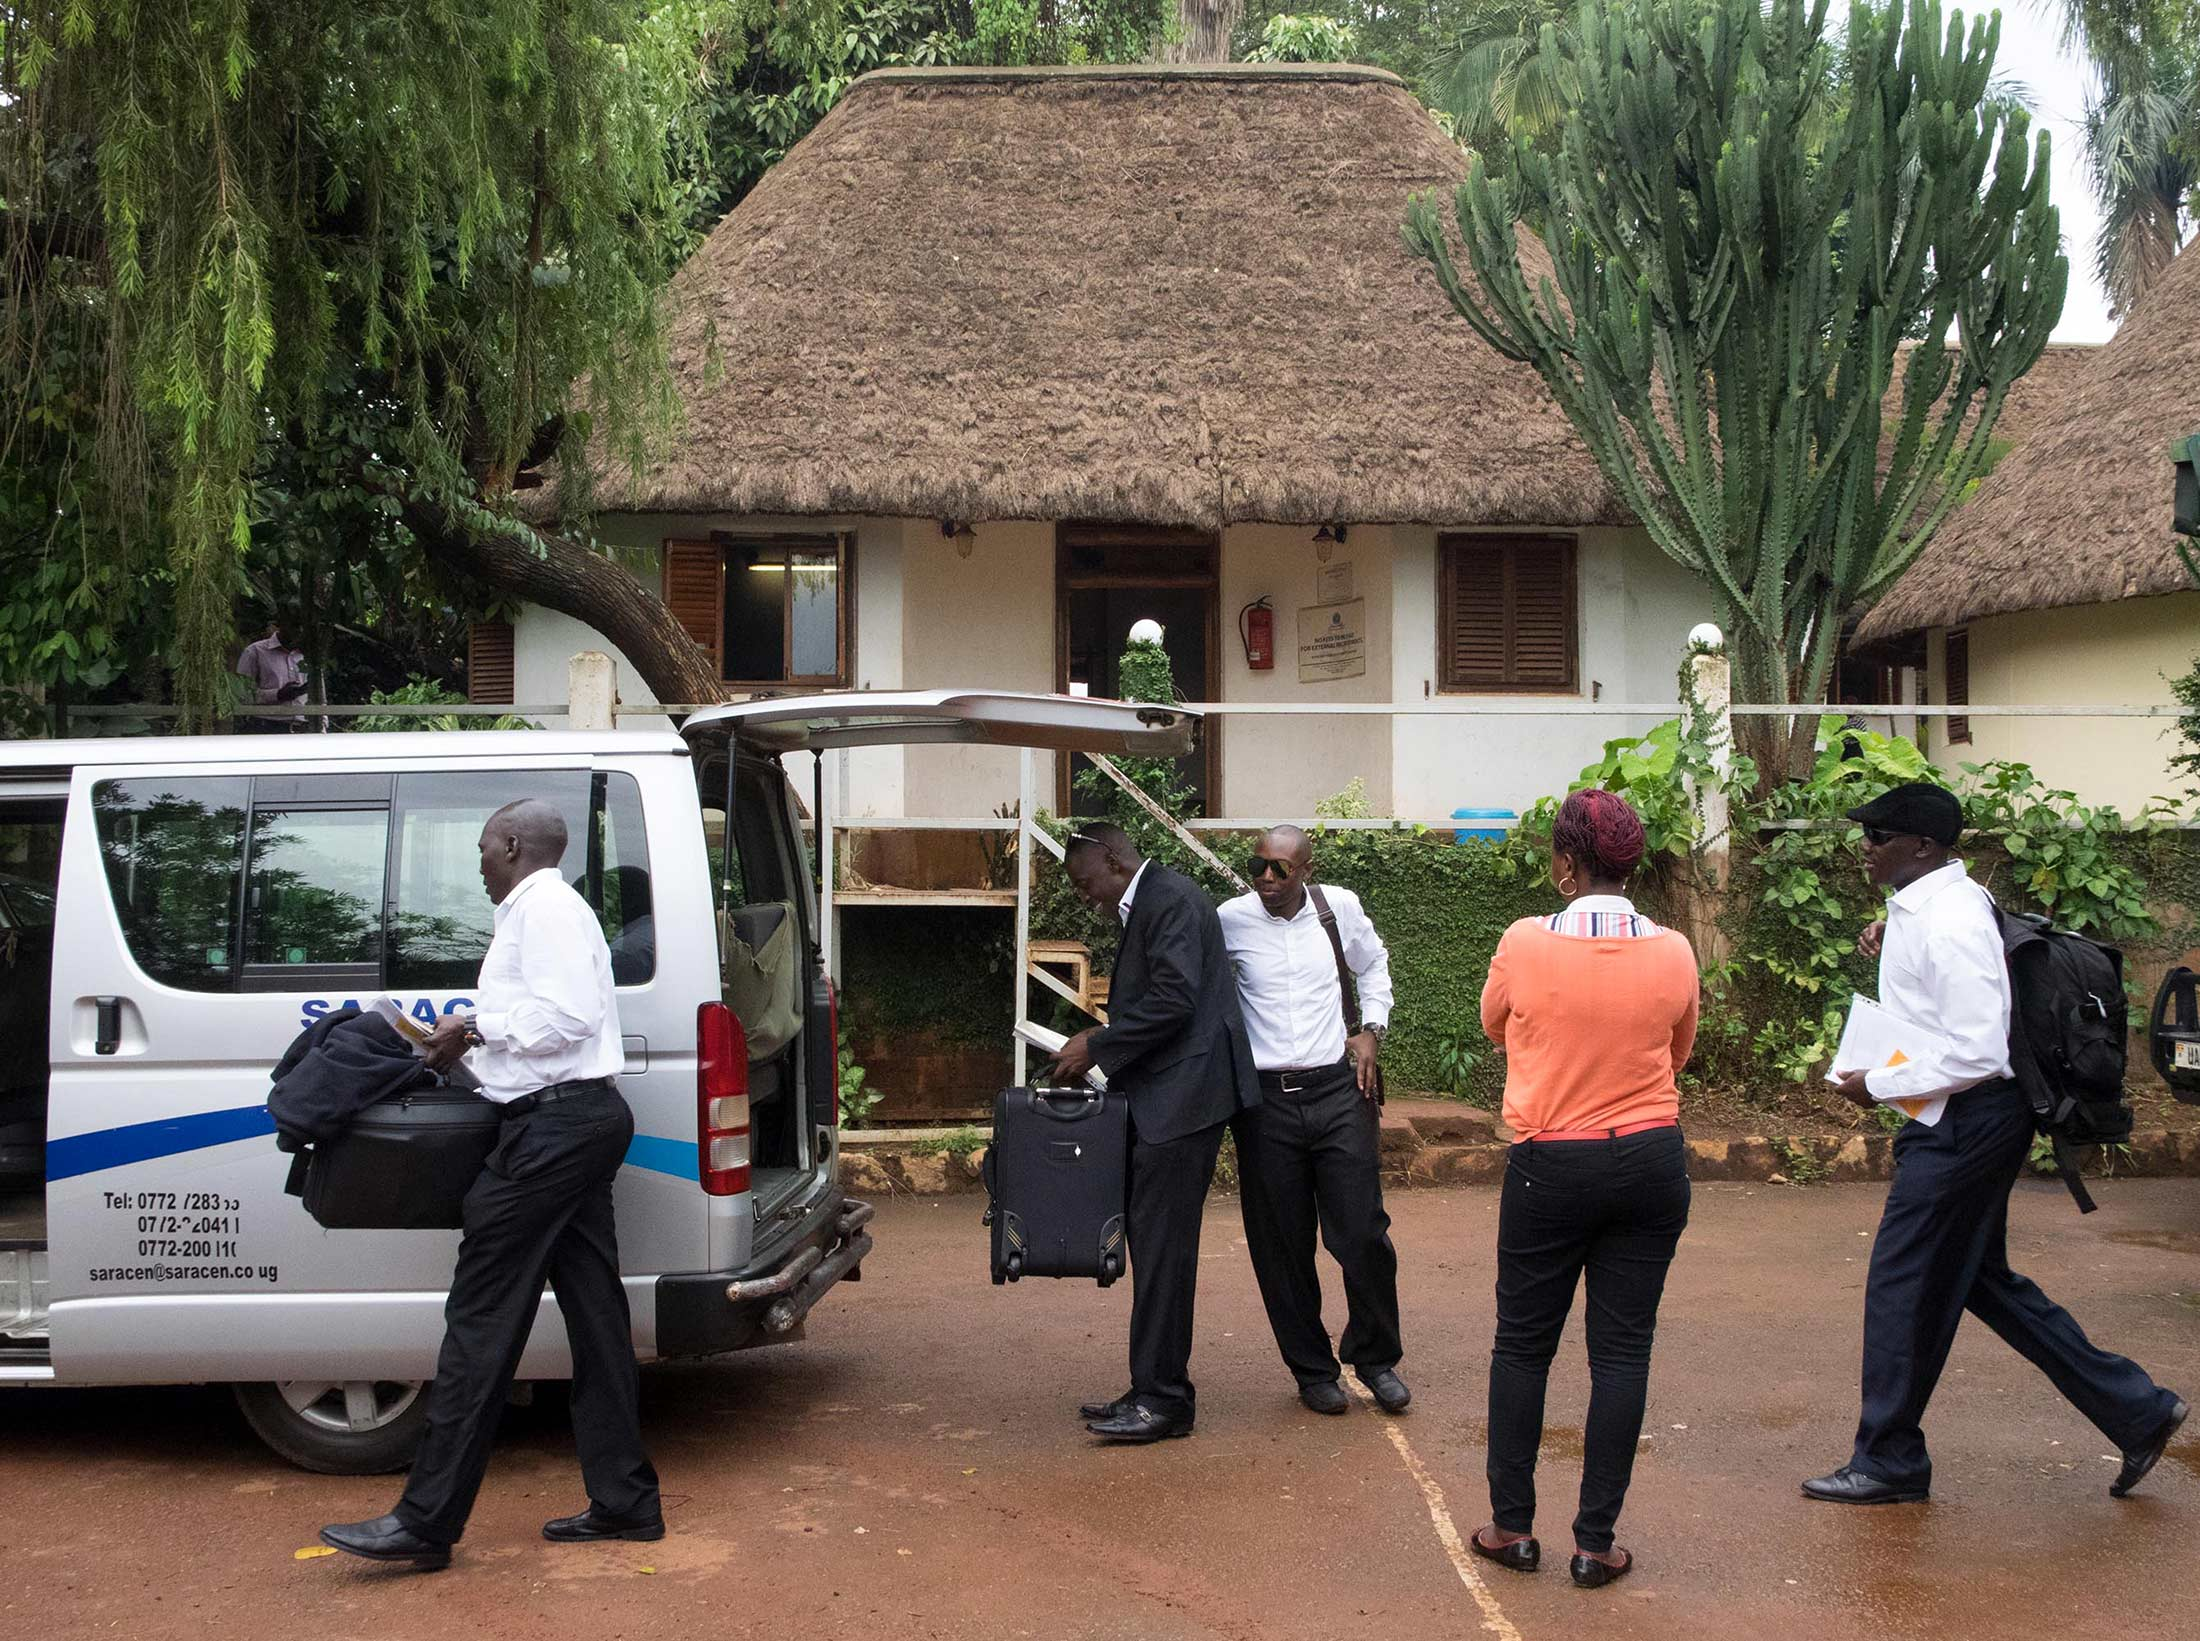 Security guards load a van with their belongings at Saracenu0027s compound before setting off for Iraq. & Ugandau0027s Top Export: Mercenaries